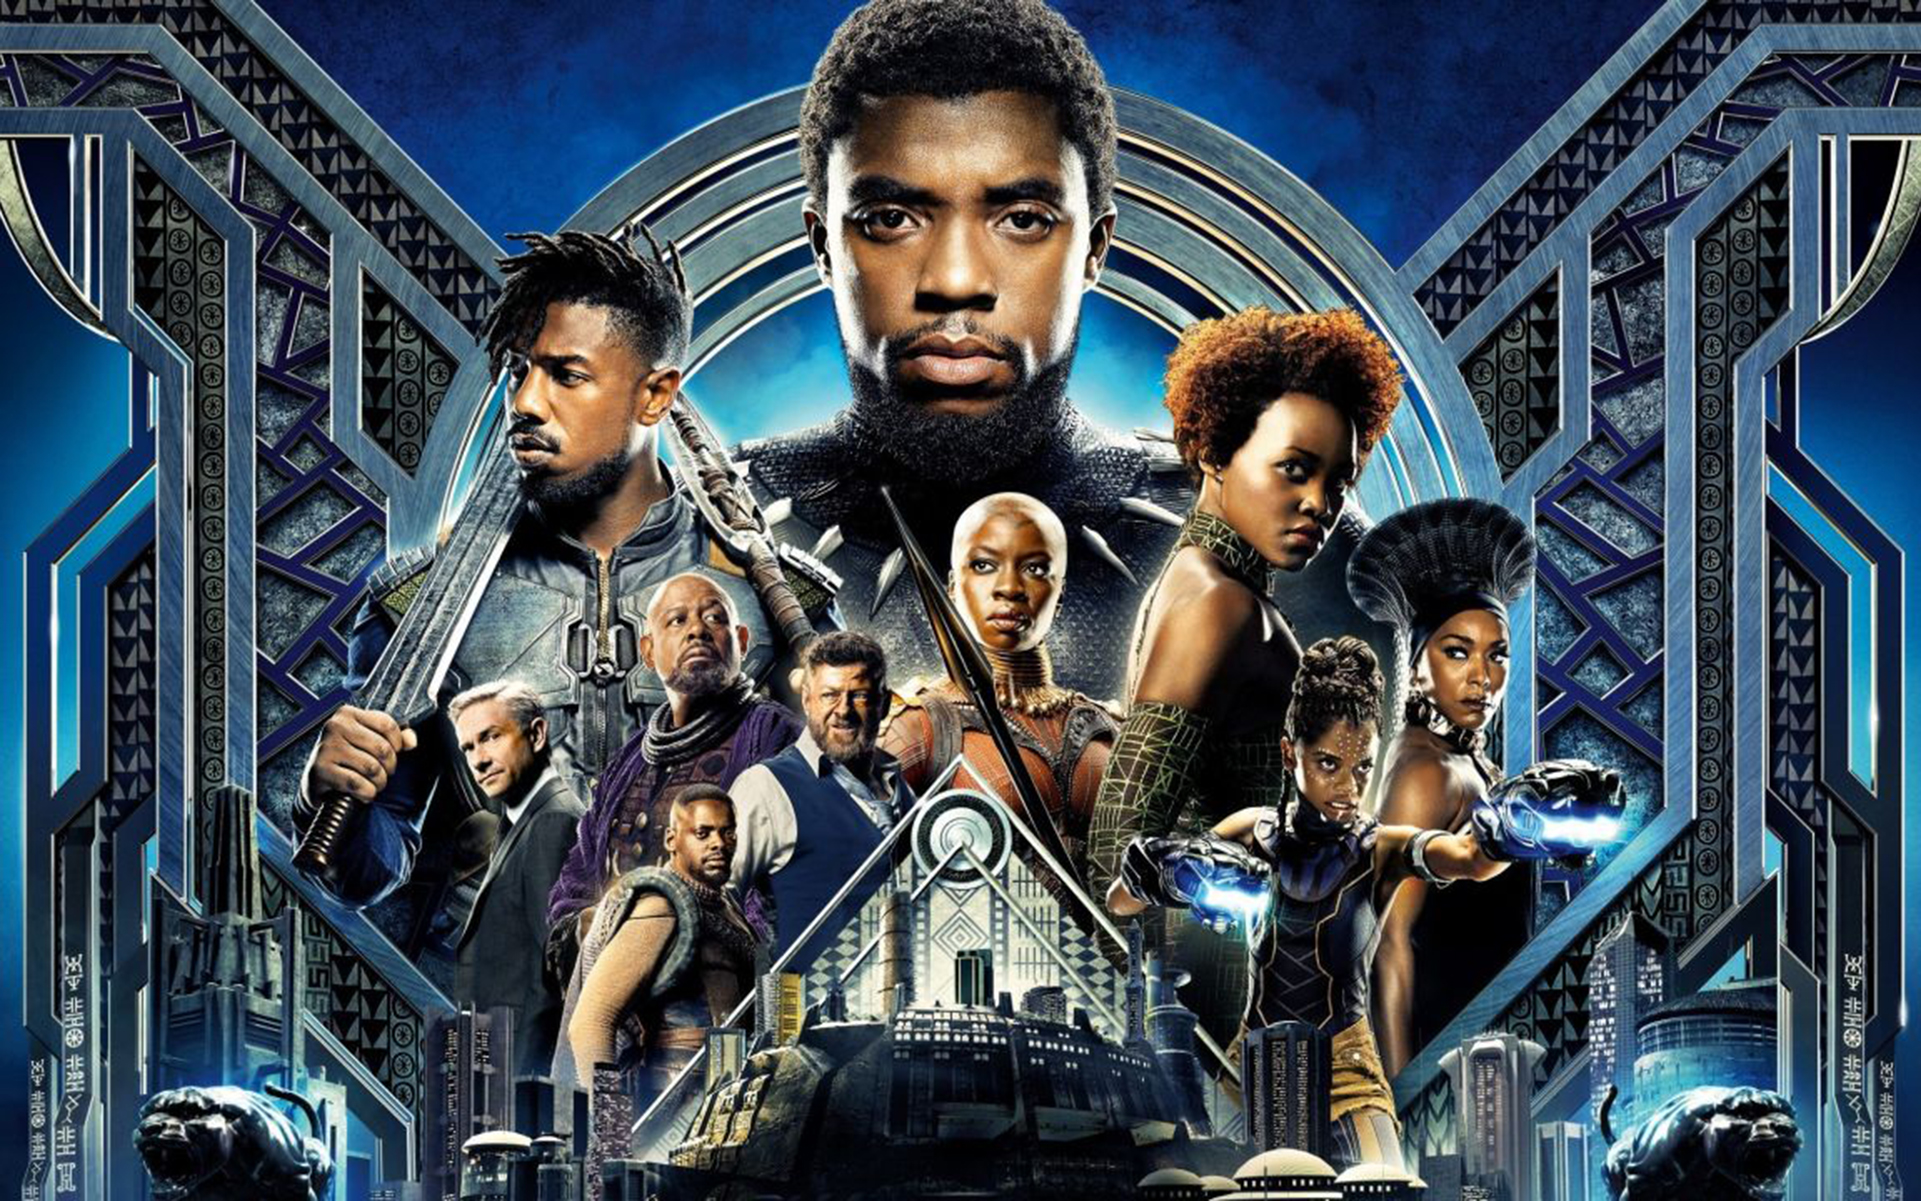 'Black Panther': Is It Worth the High?